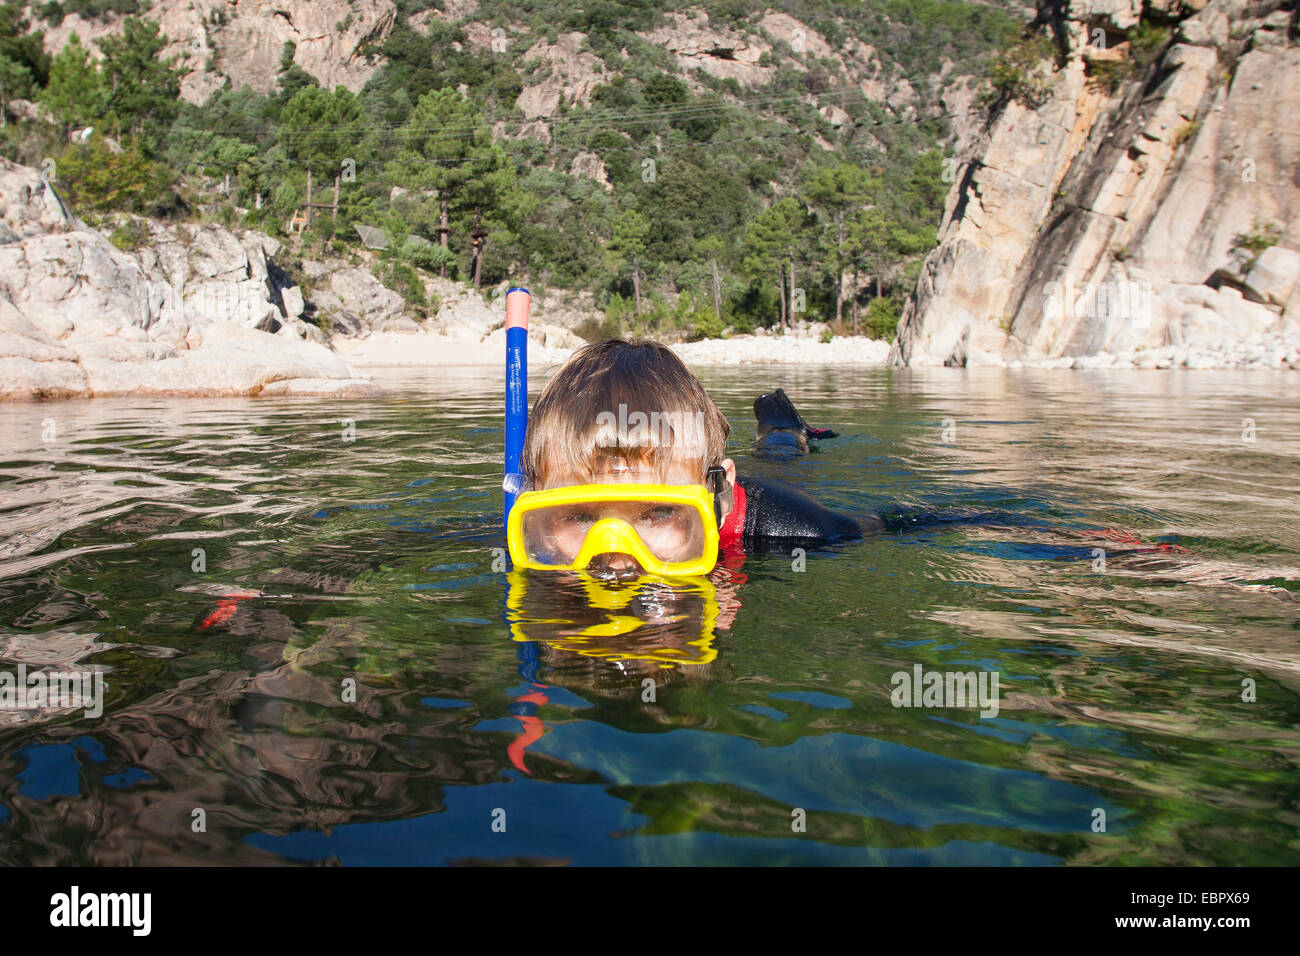 boy snorkeling in a crystal clear stream, France, Corsica - Stock Image